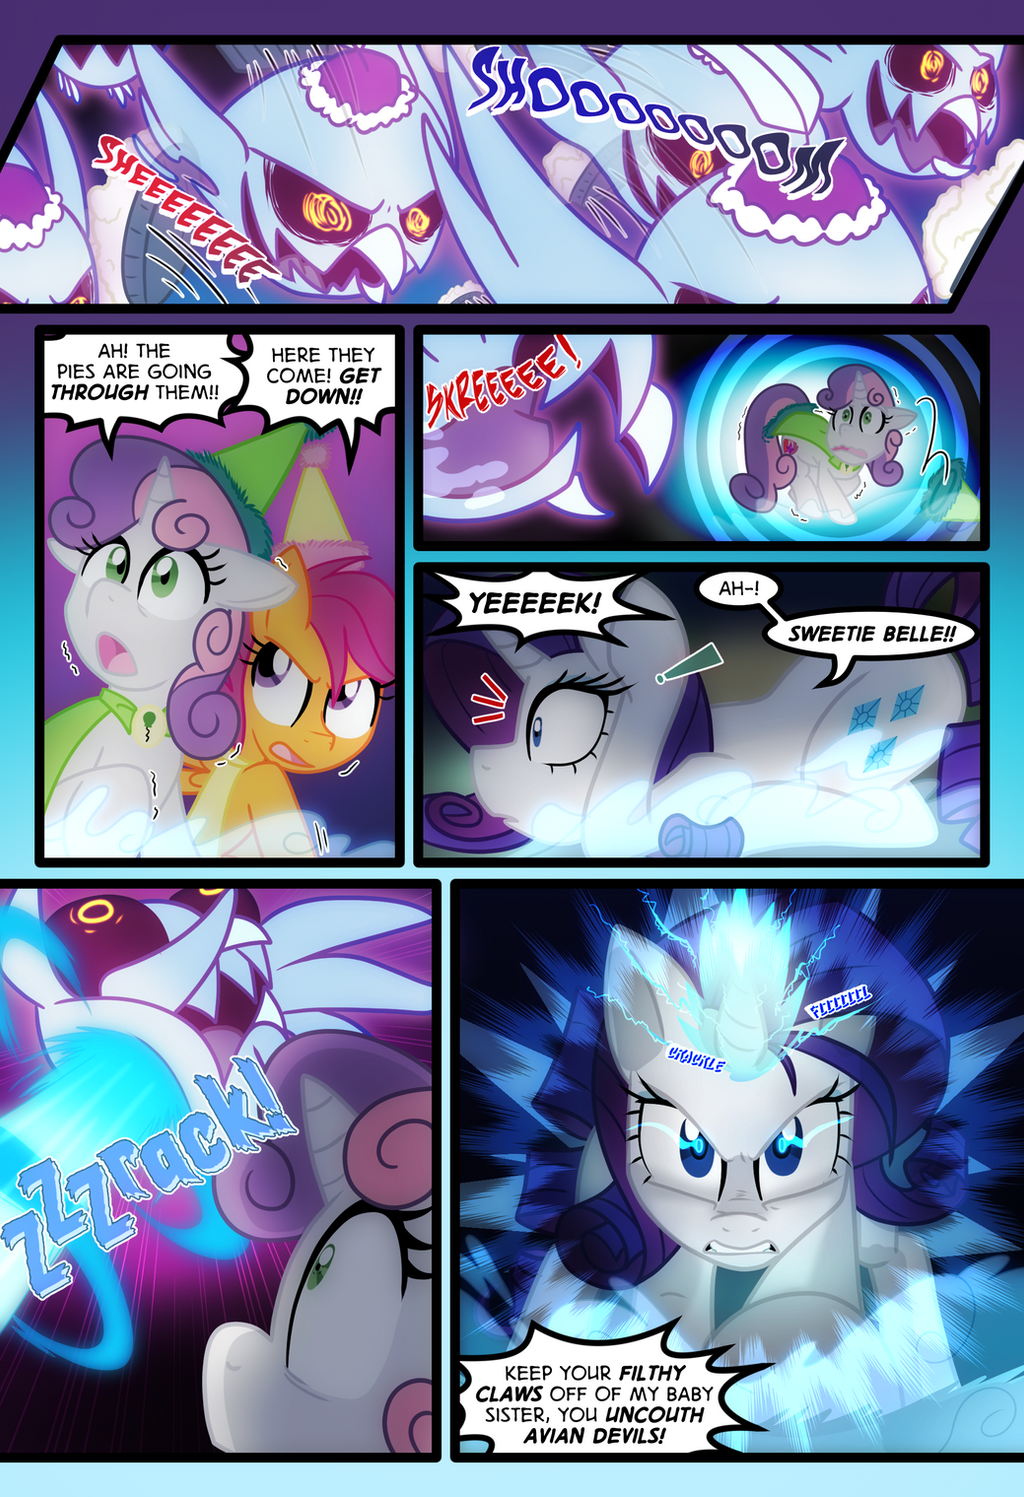 Lonely Hooves 2-80 by Zaron